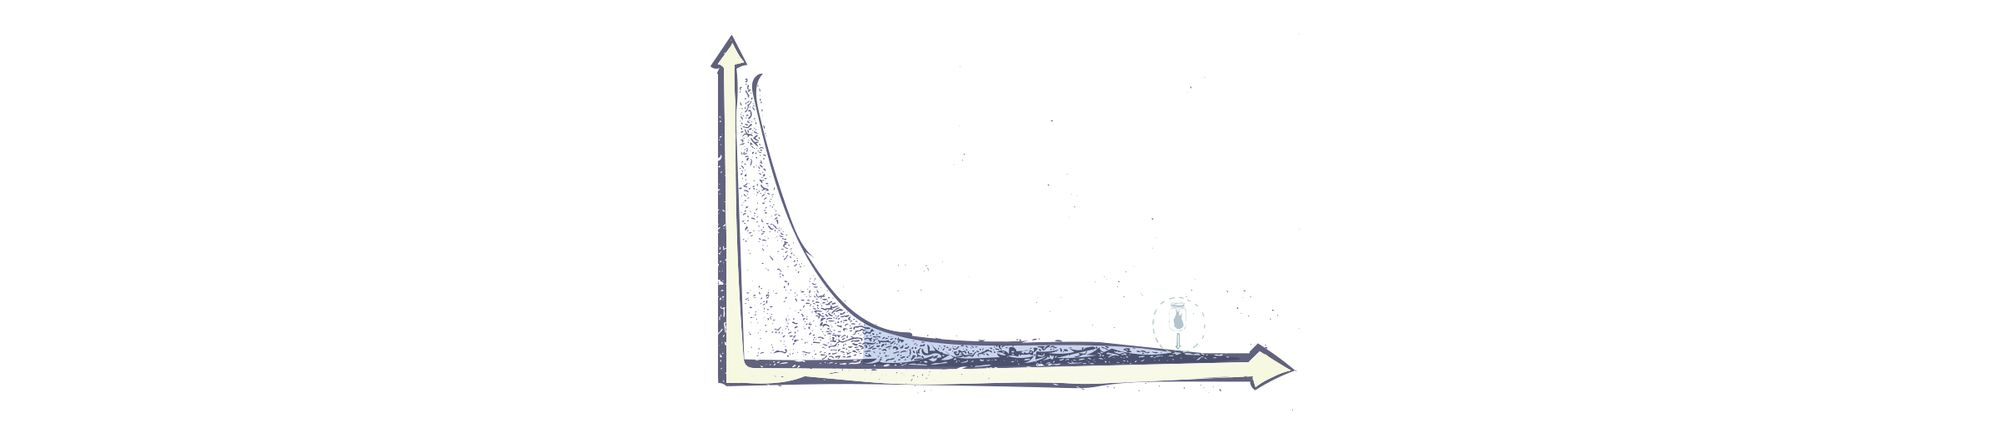 Drawing of a long-tail statistical distribution